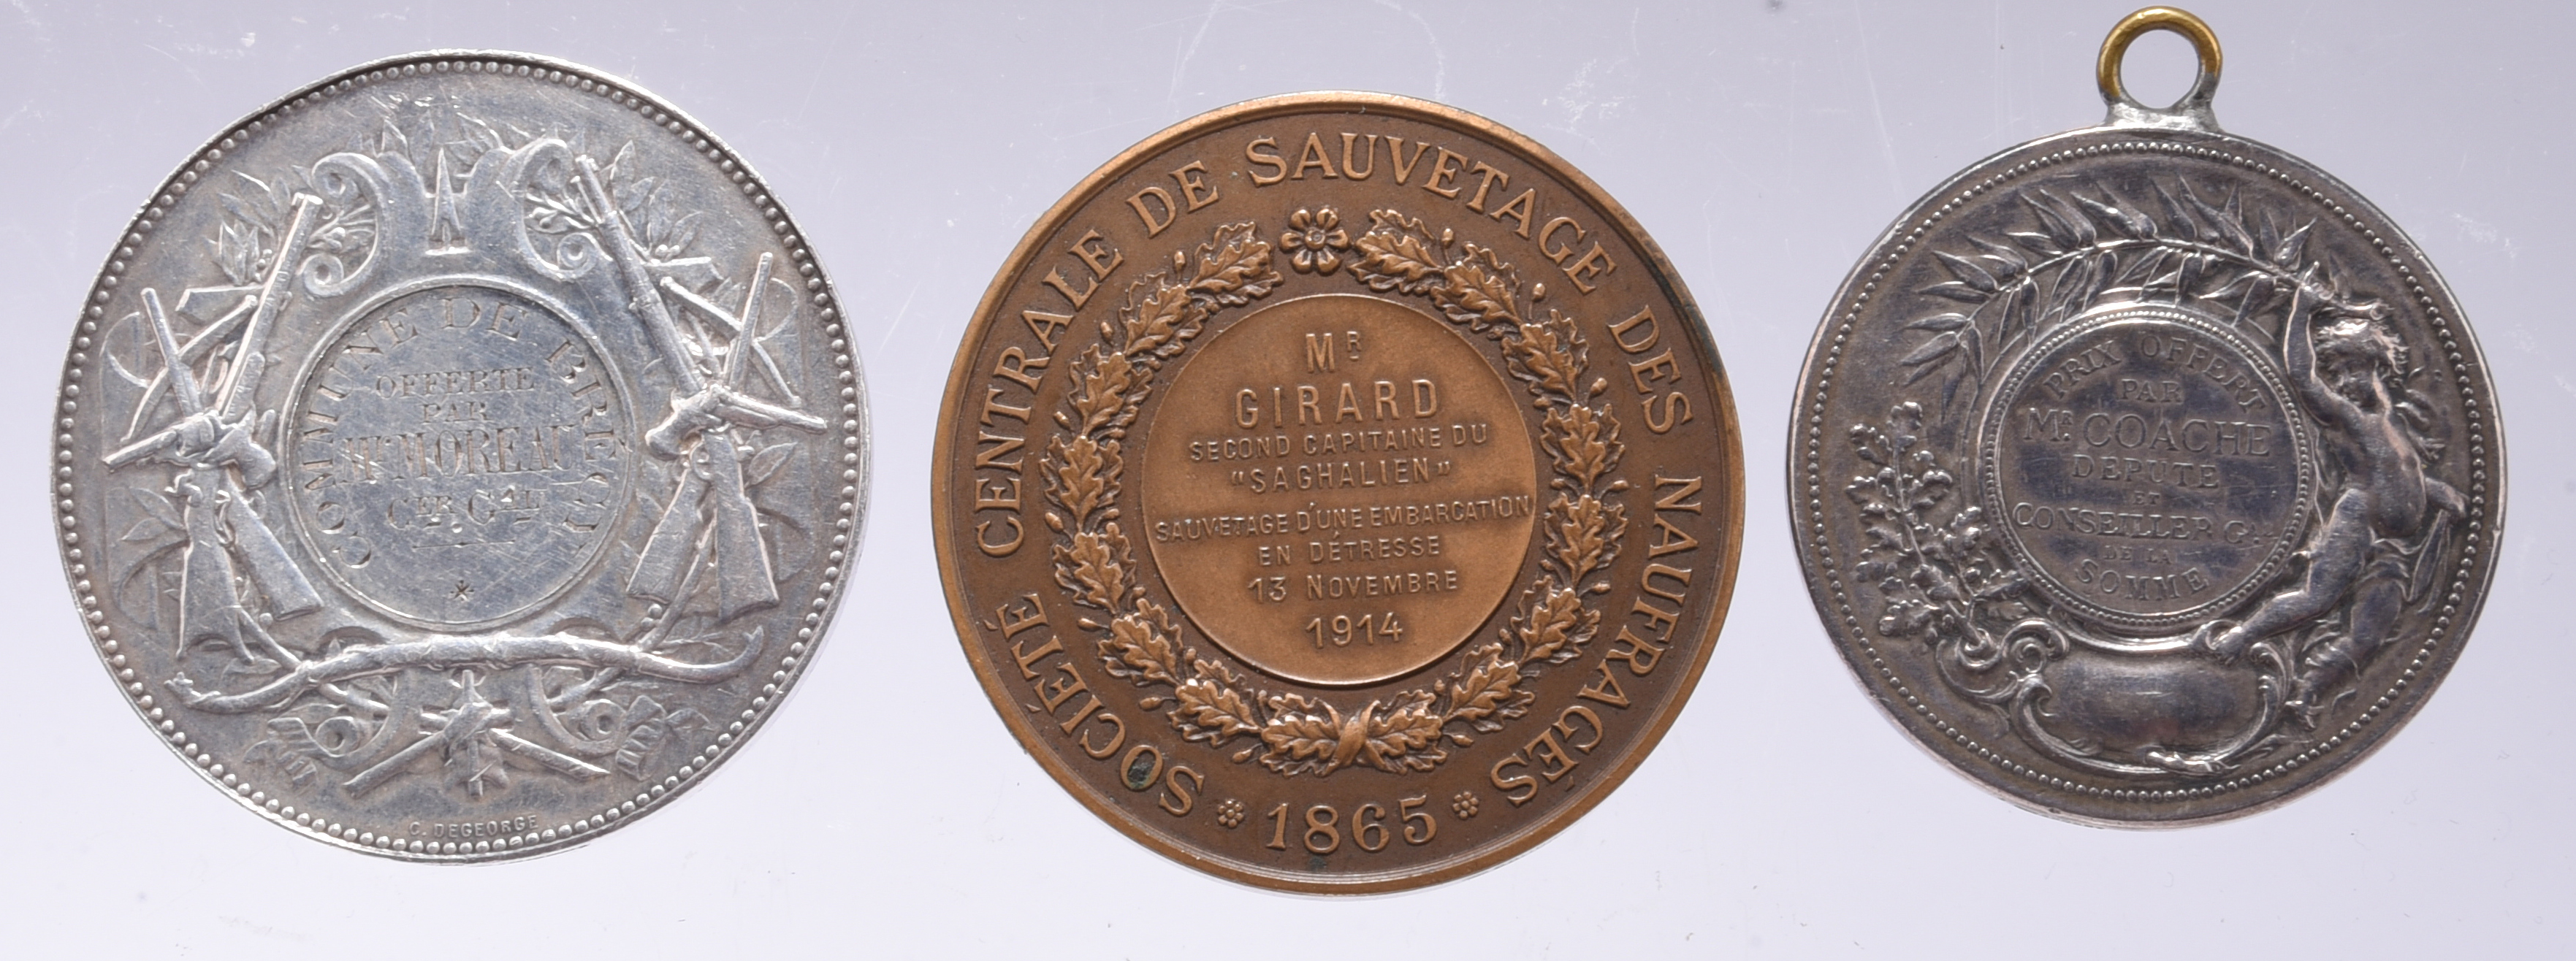 Three French Award Medals: silver, 51mm, head of Marianne left, rev. rifles, revolver and a bow, - Image 2 of 2